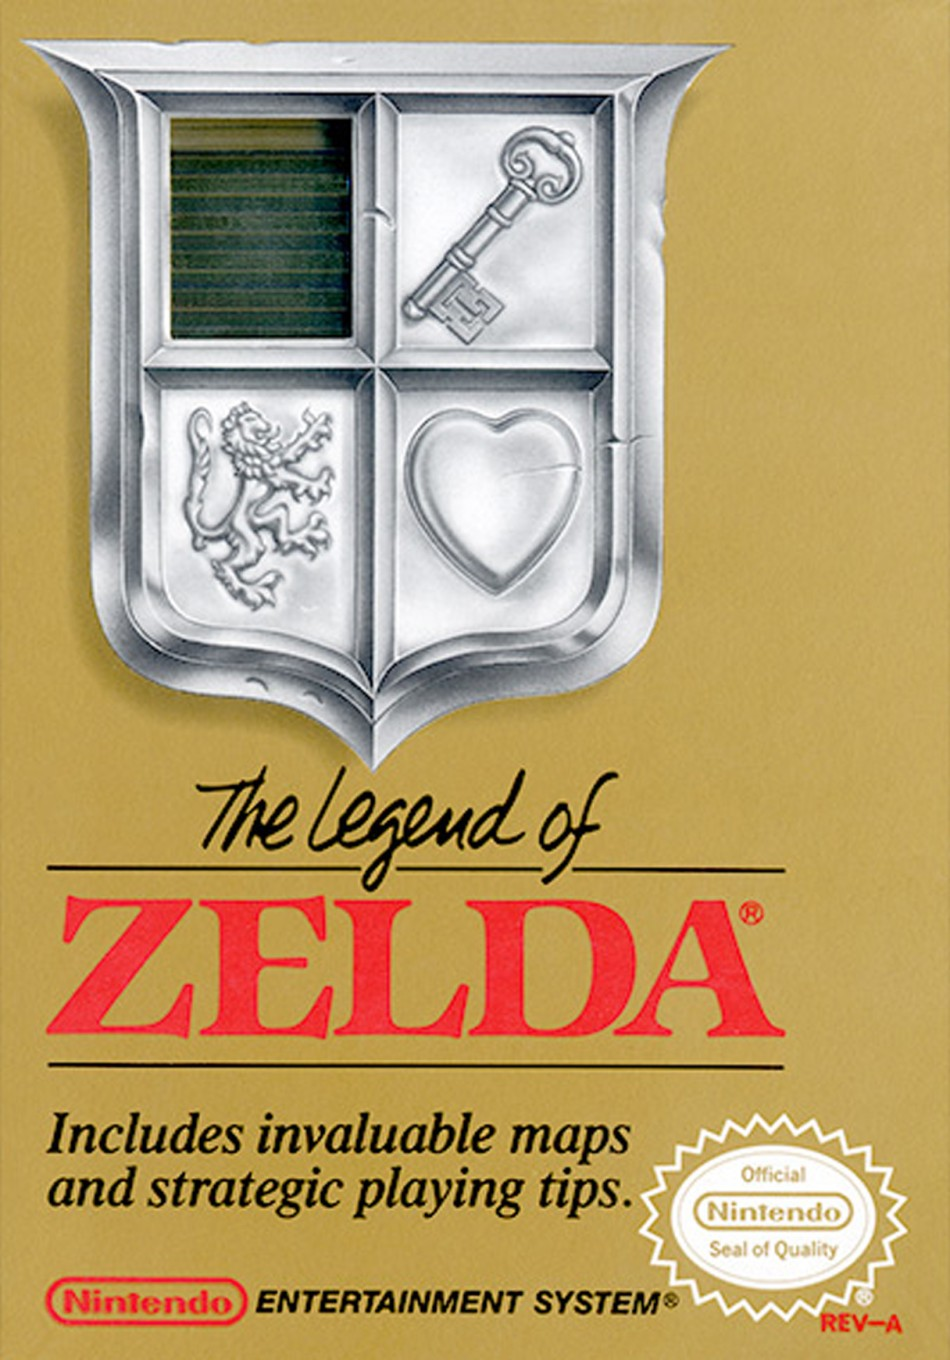 CI_TheLegendOfZeldaInterview_Packshot.jpg